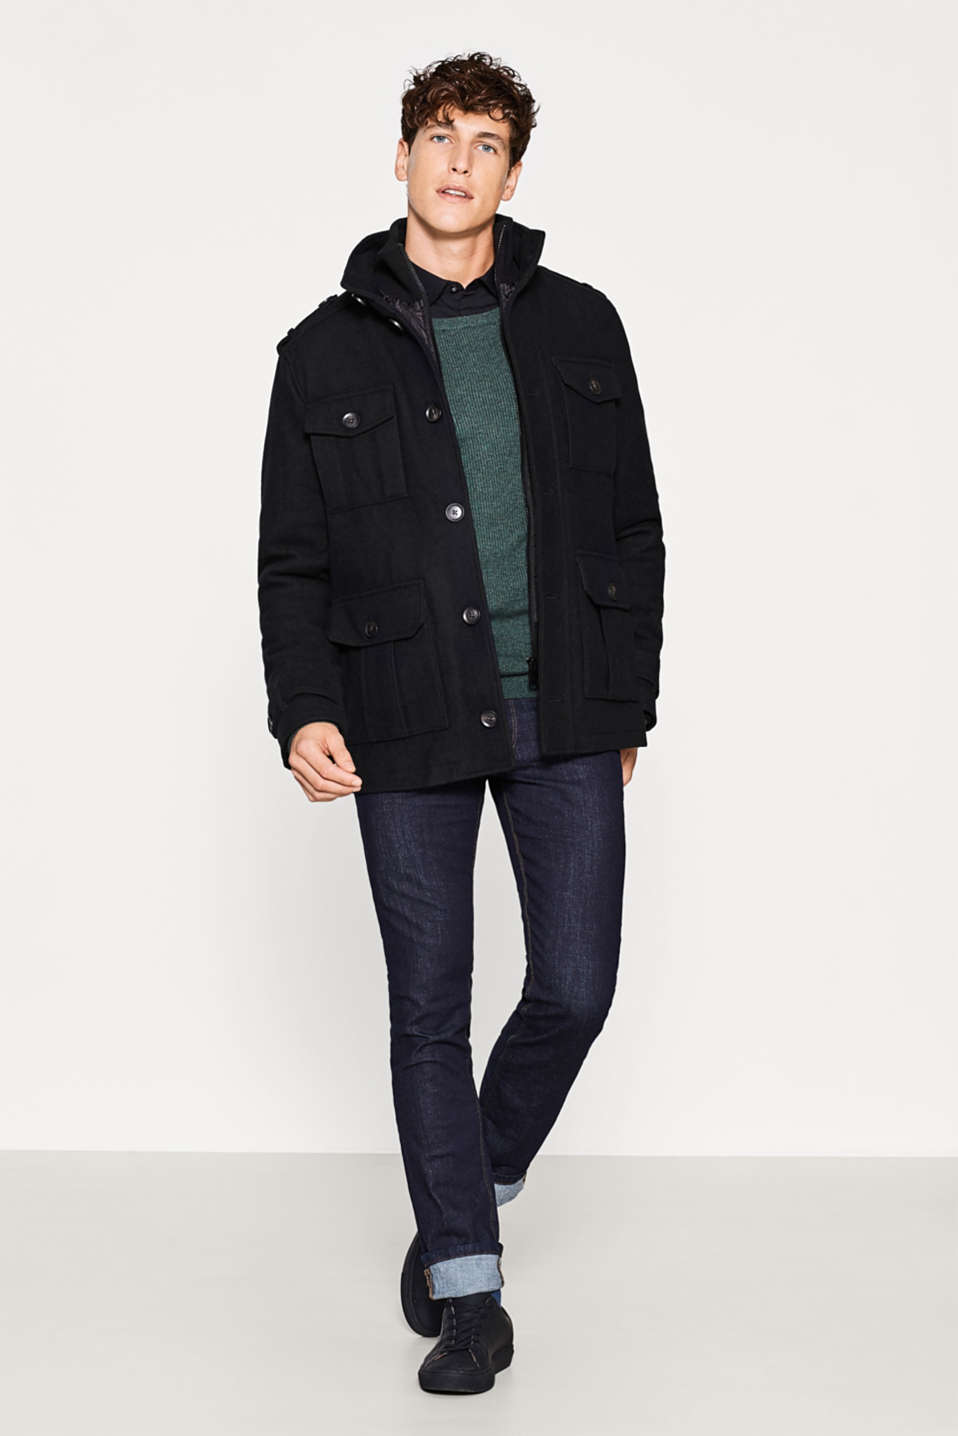 Military jacket in a warm wool blend